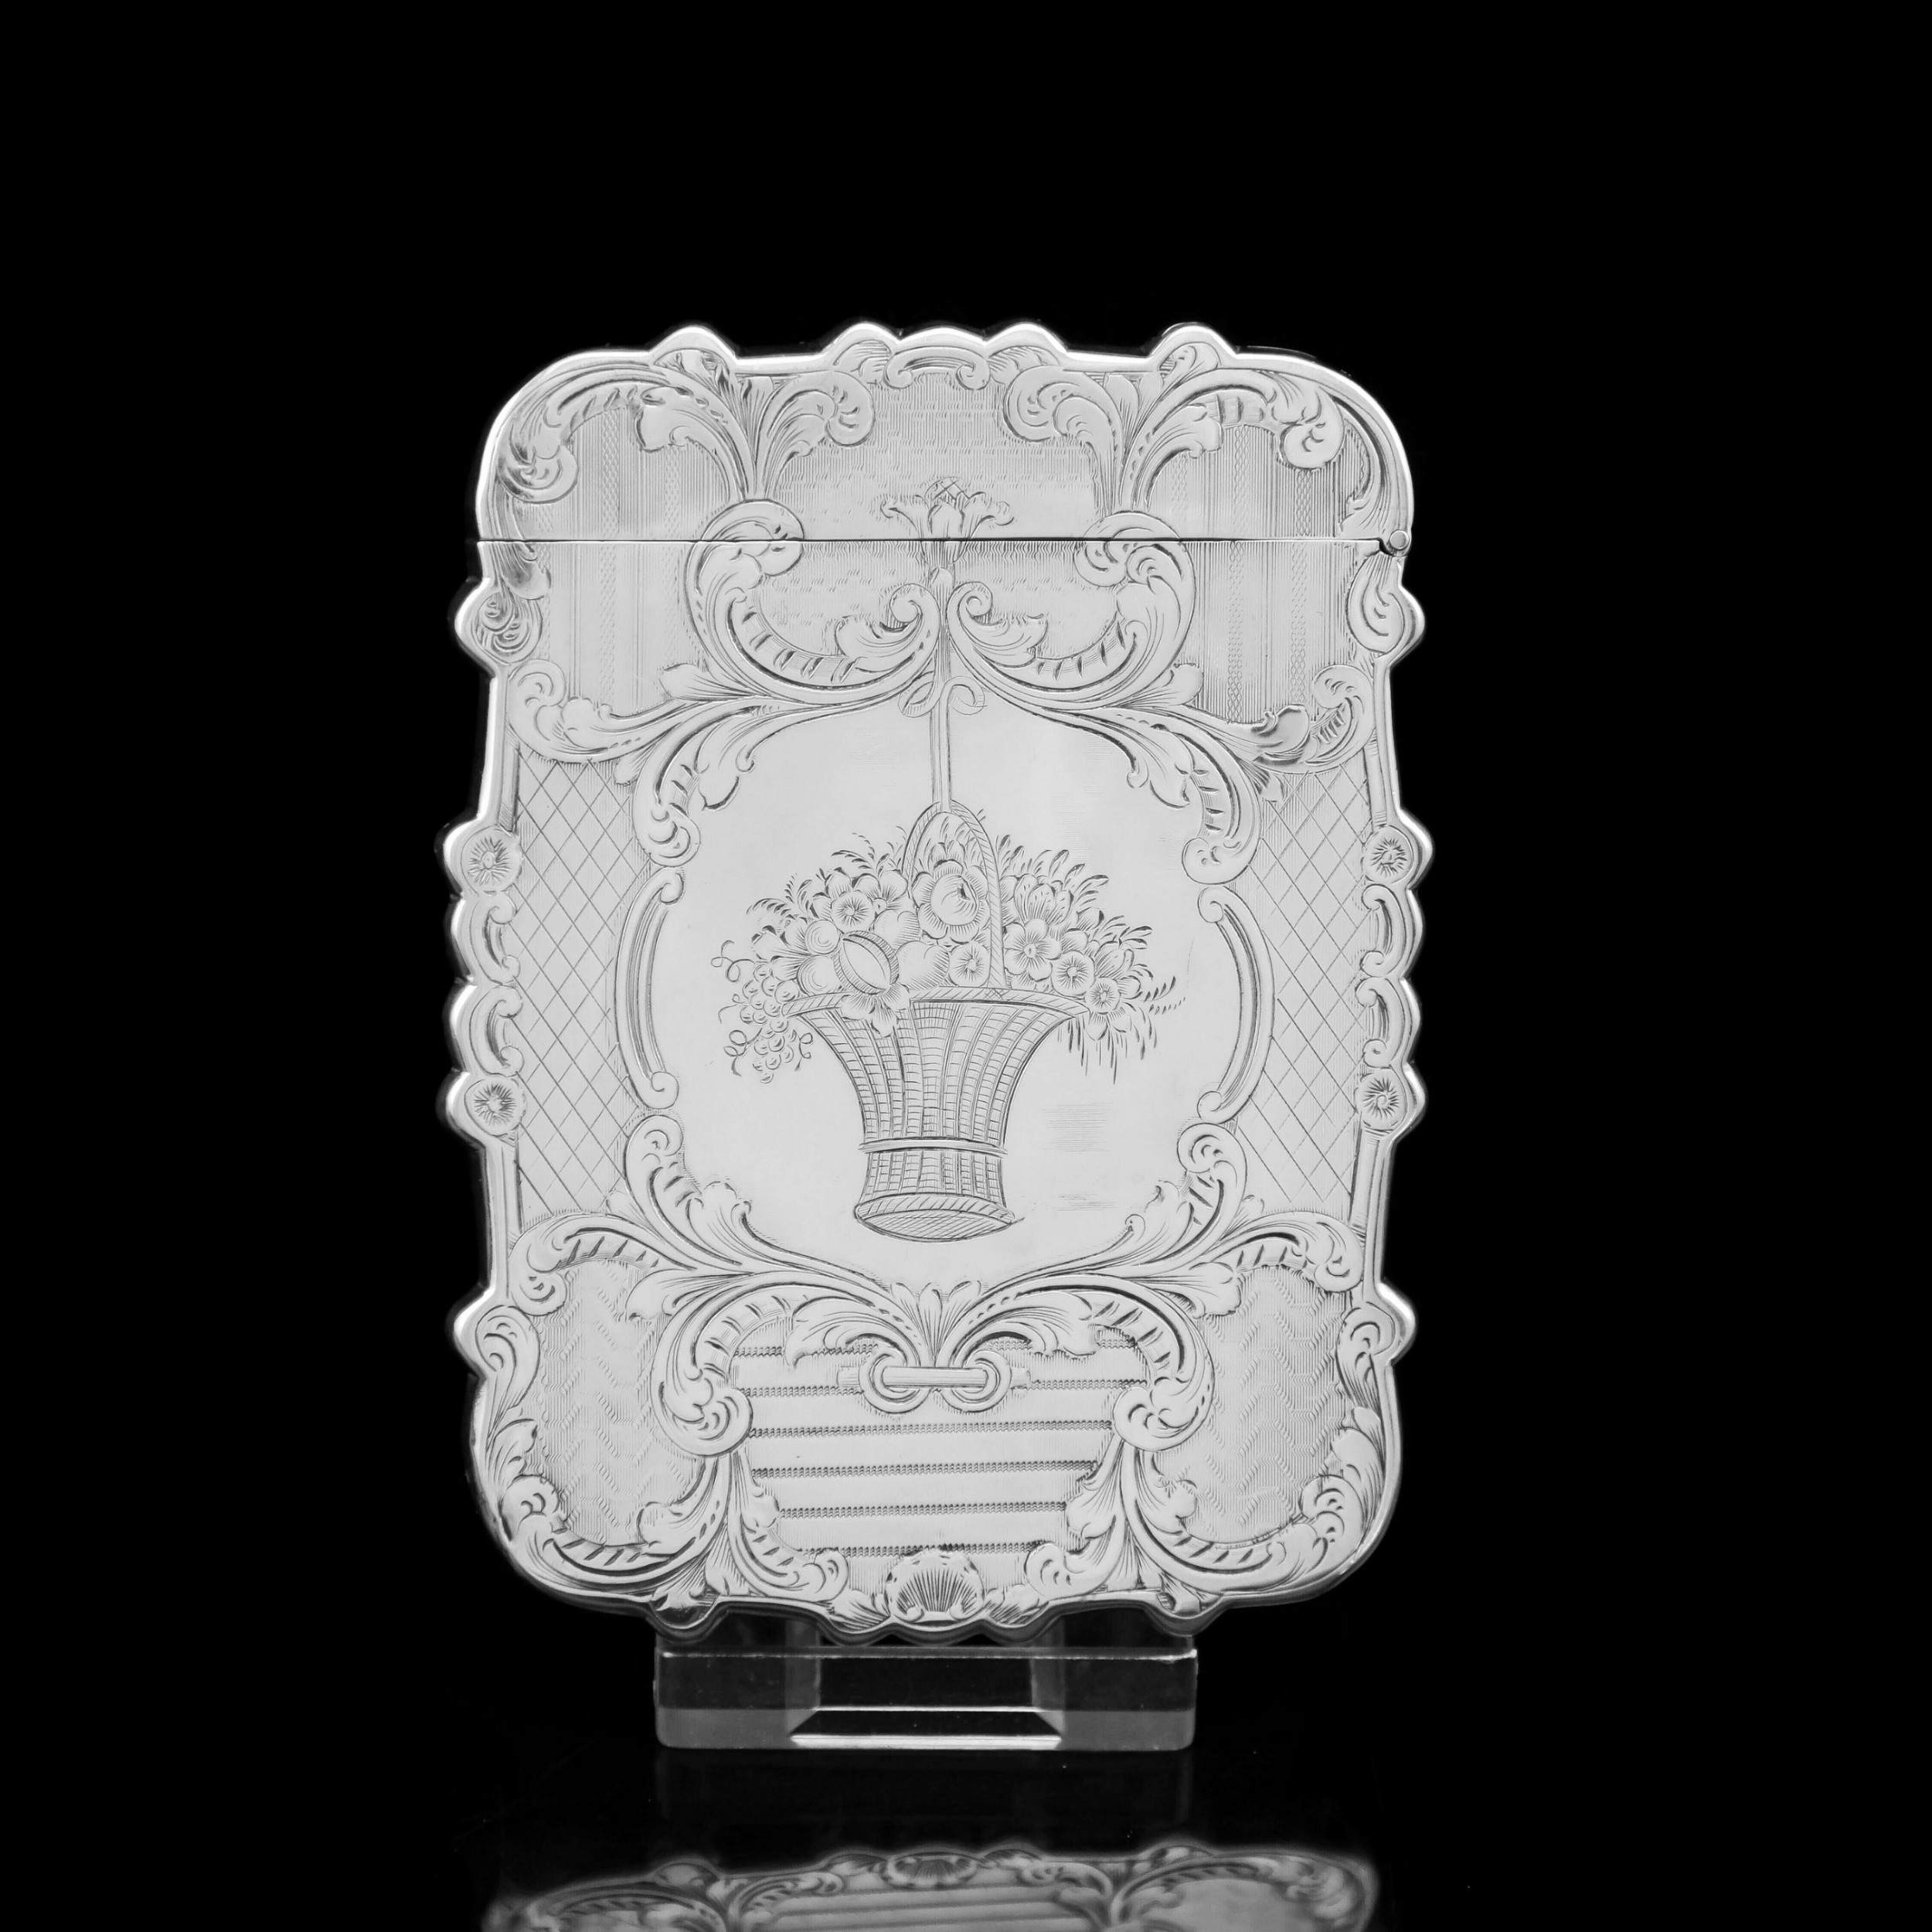 antique victorian solid silver card case with floral engravings taylor perry 1898